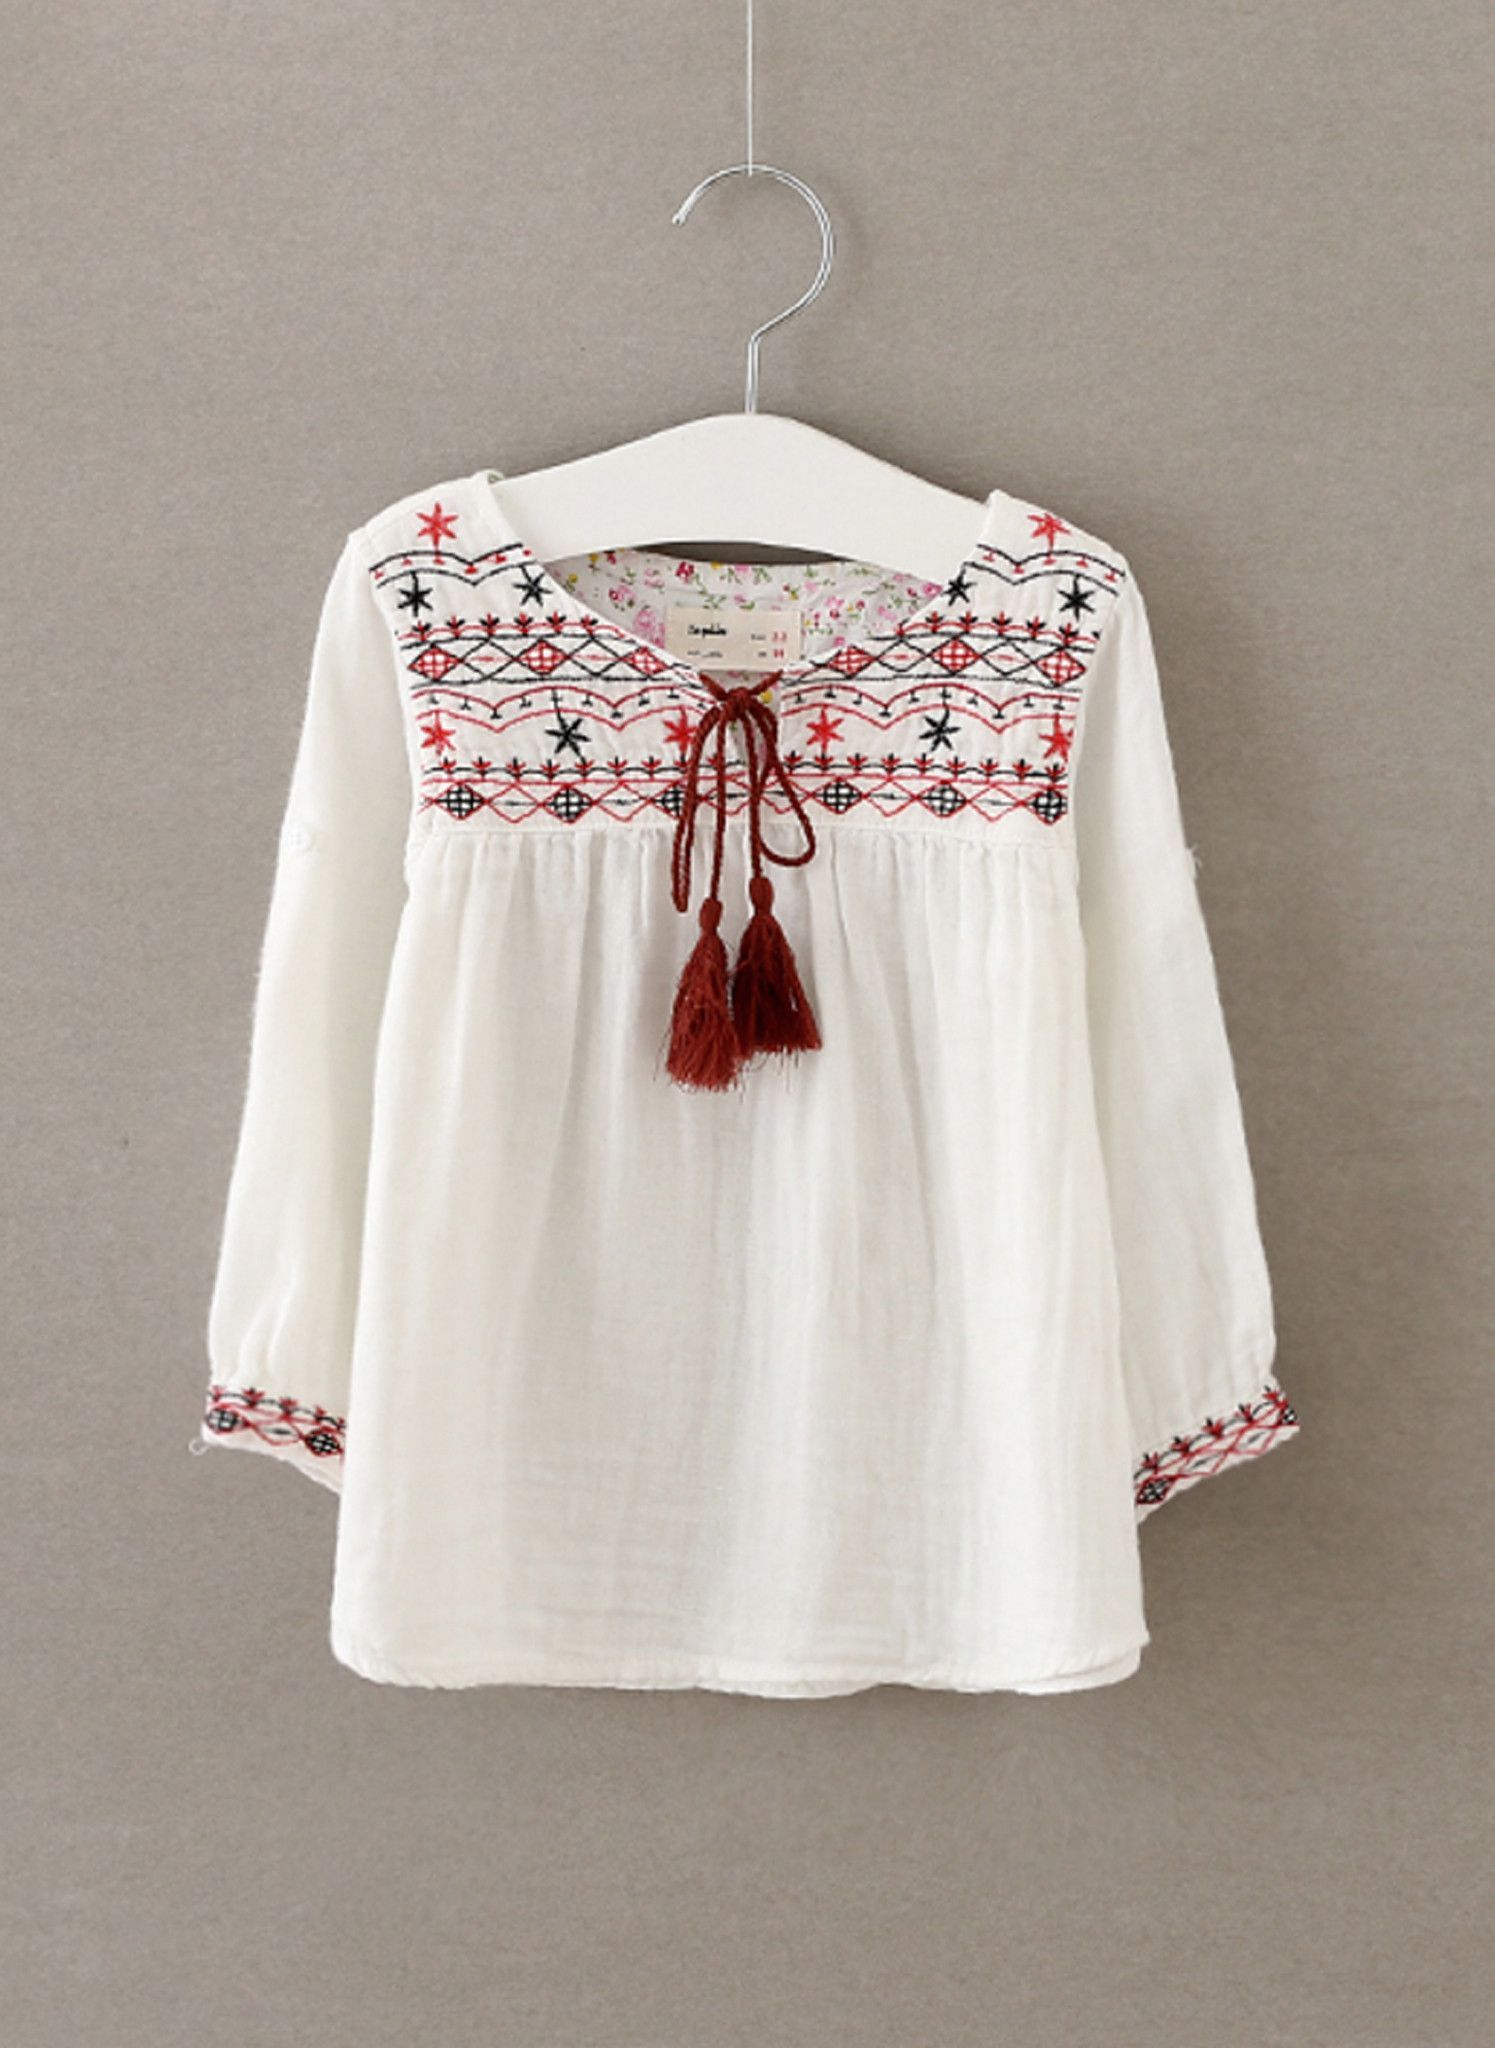 Embroidery Cotton Blouse Top Peasant Japanese Indian Ethnic Loose Floral Cute